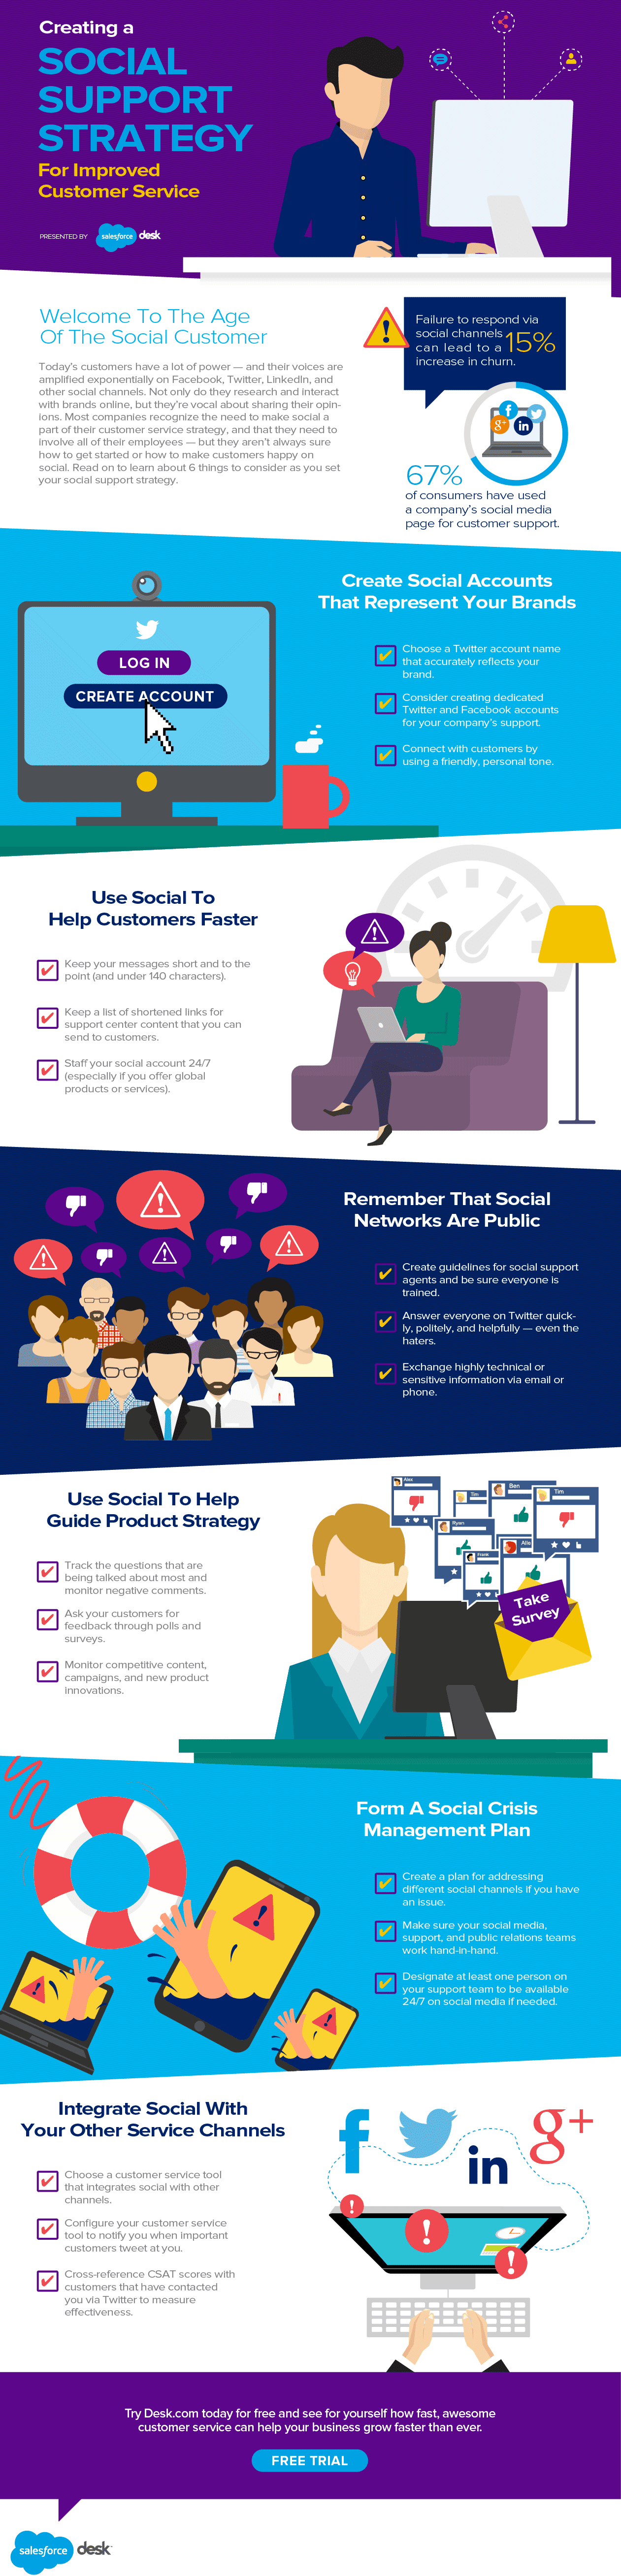 Creating a Social Support Strategy for Improved Customer Service